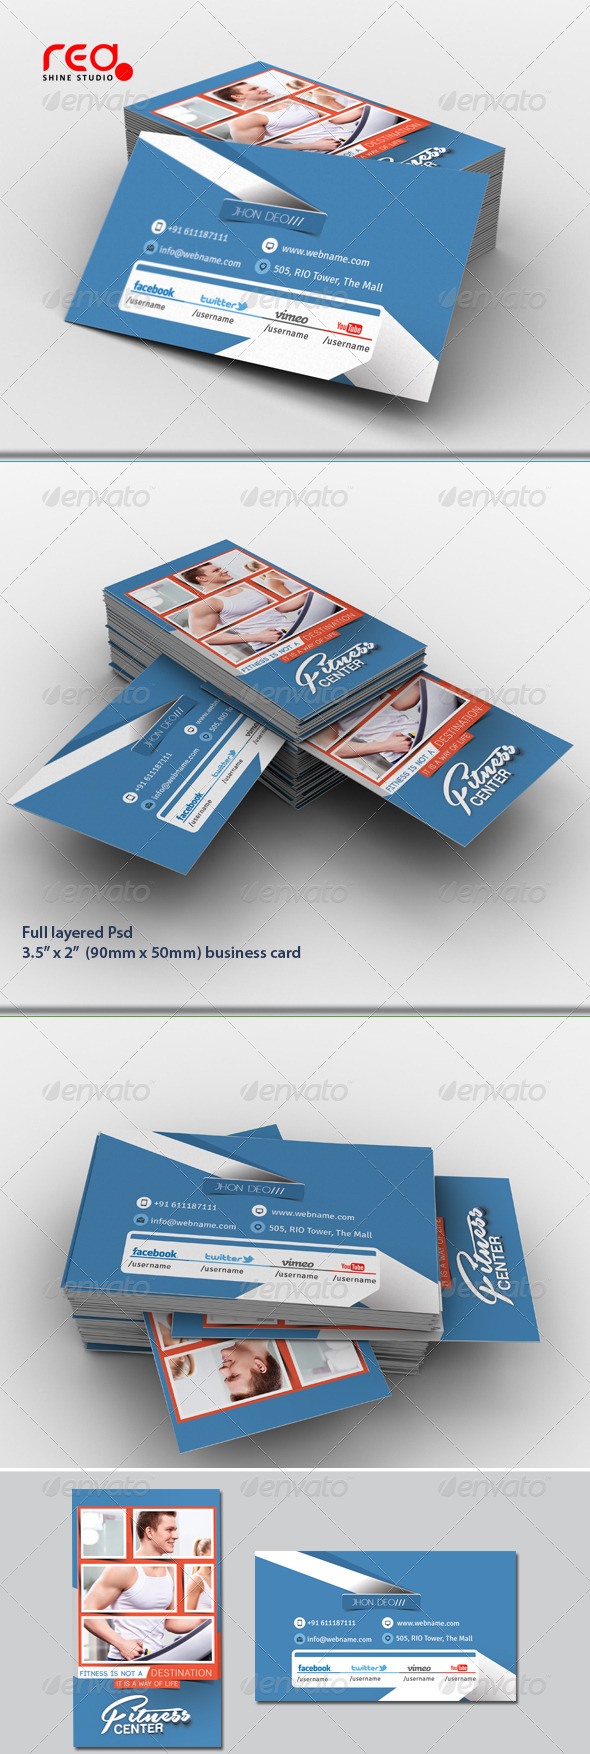 Fitness Center Business Card Set - Corporate Business Cards